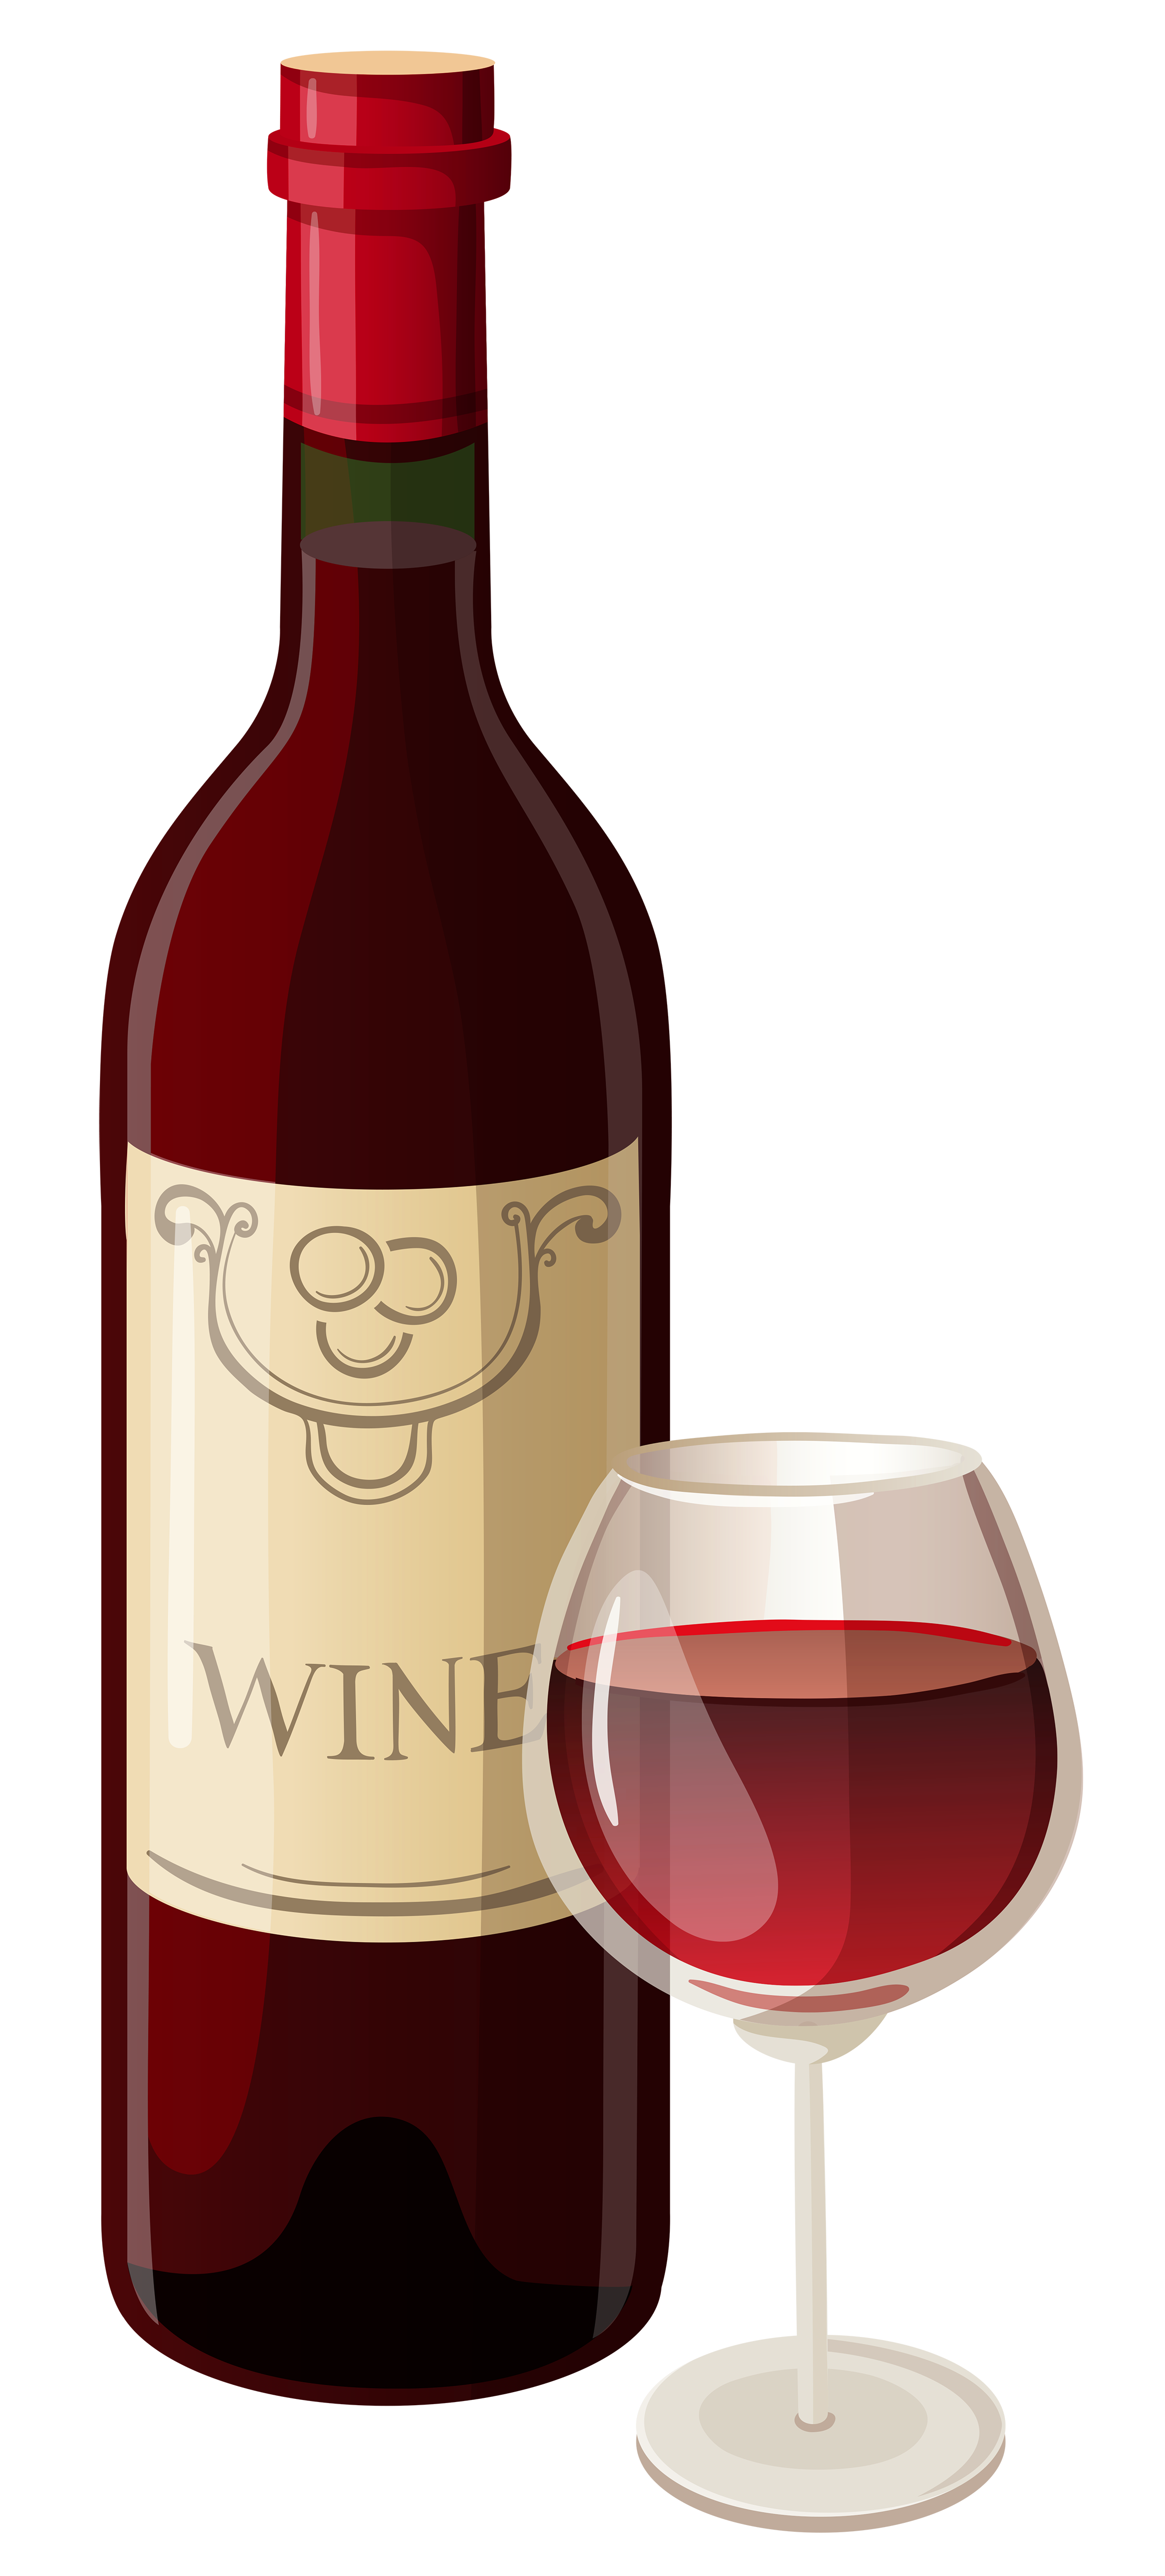 Wine Bottle And Glass Png Vector Clipart - Wine Bottle And Glass, Transparent background PNG HD thumbnail